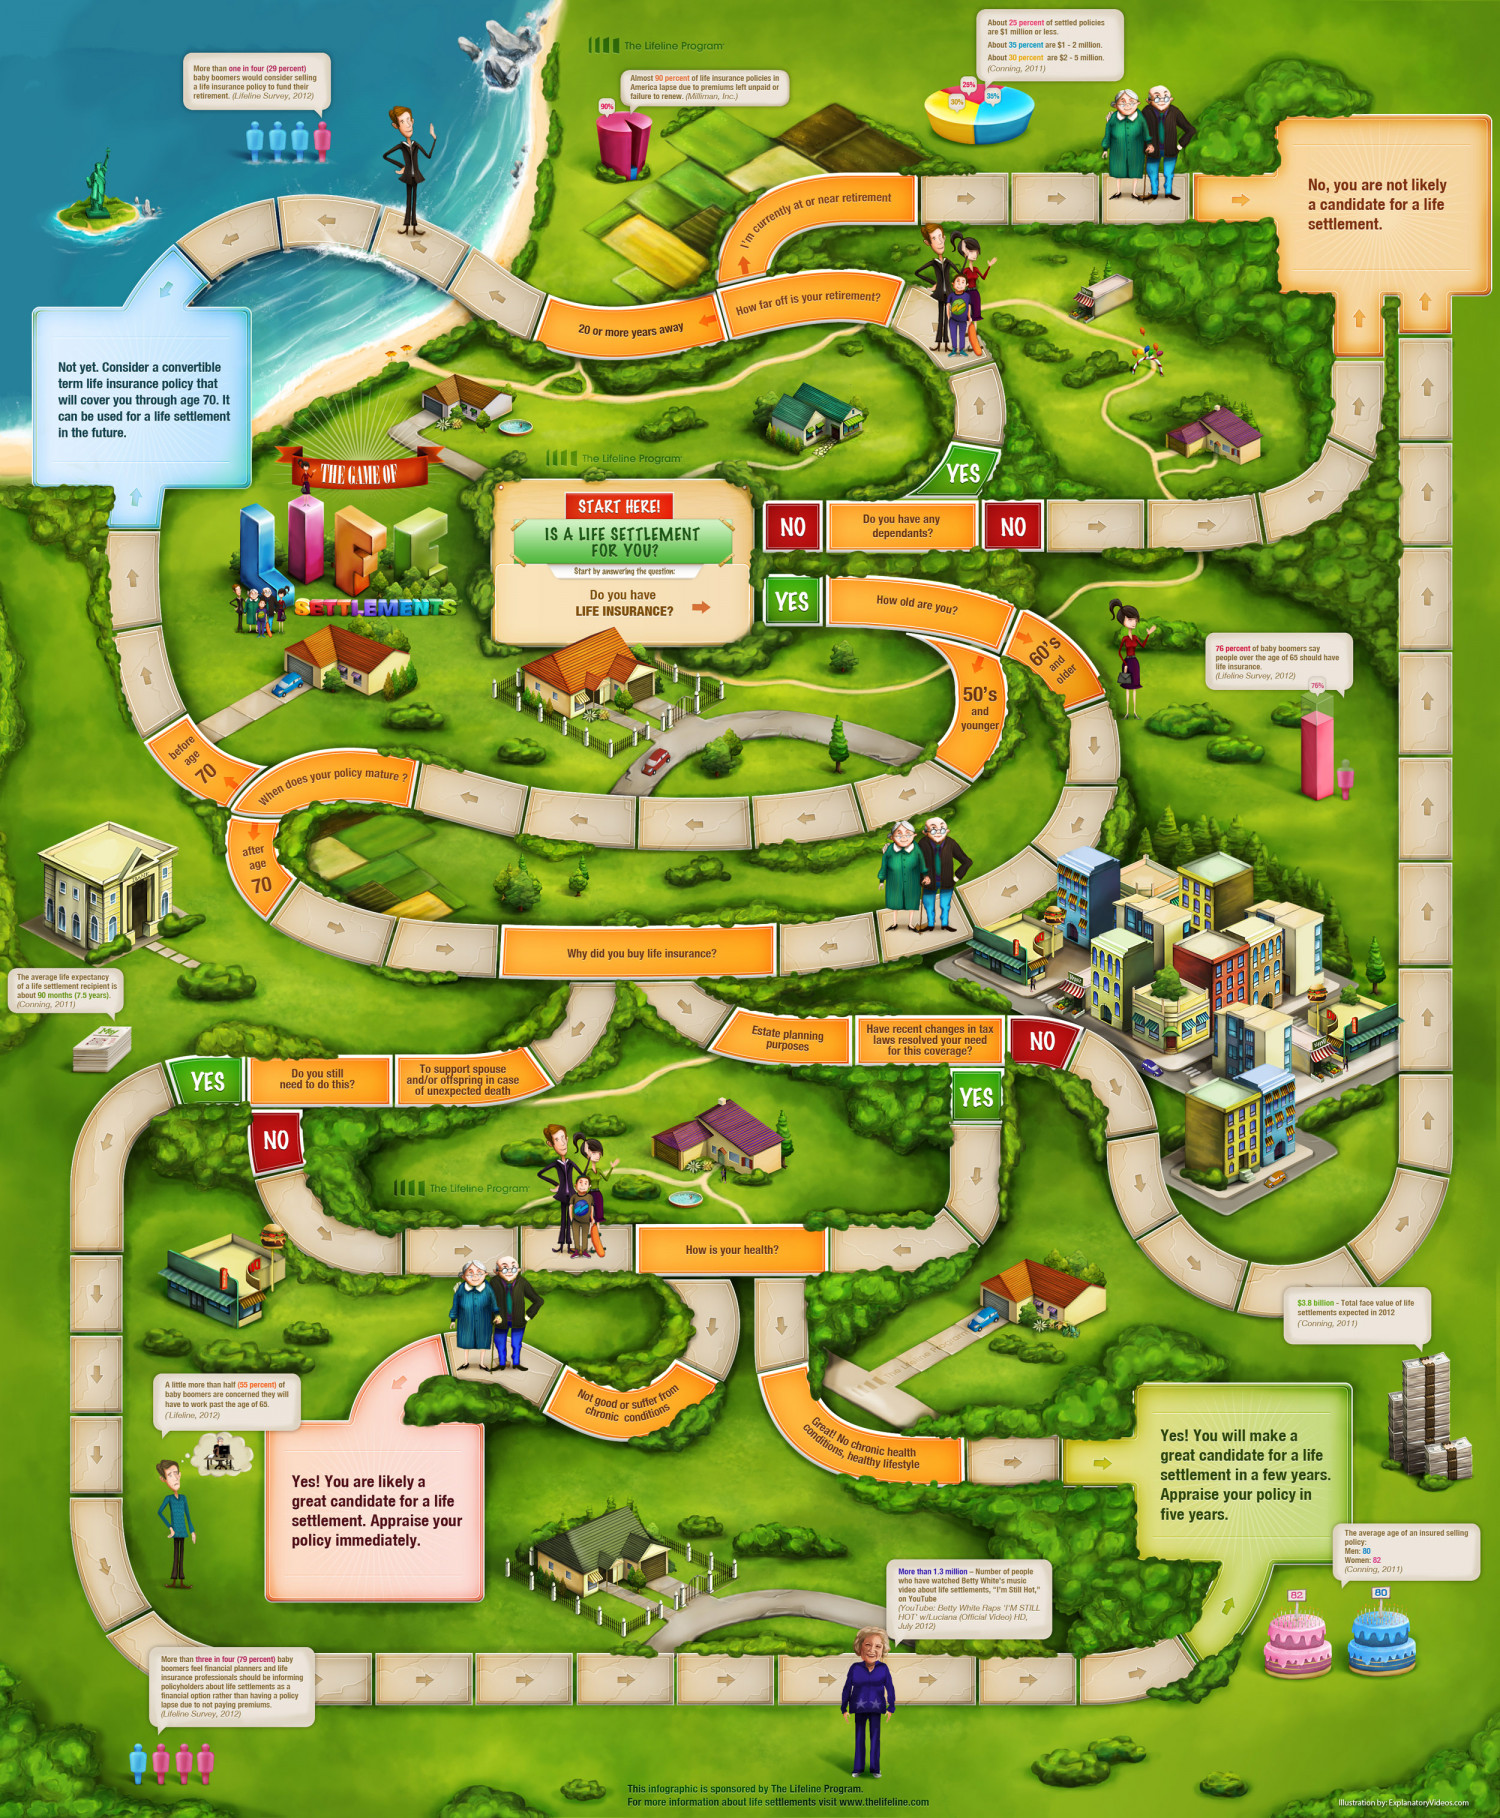 The Game of Life Settlements: Is a Life Settlement for You? Infographic